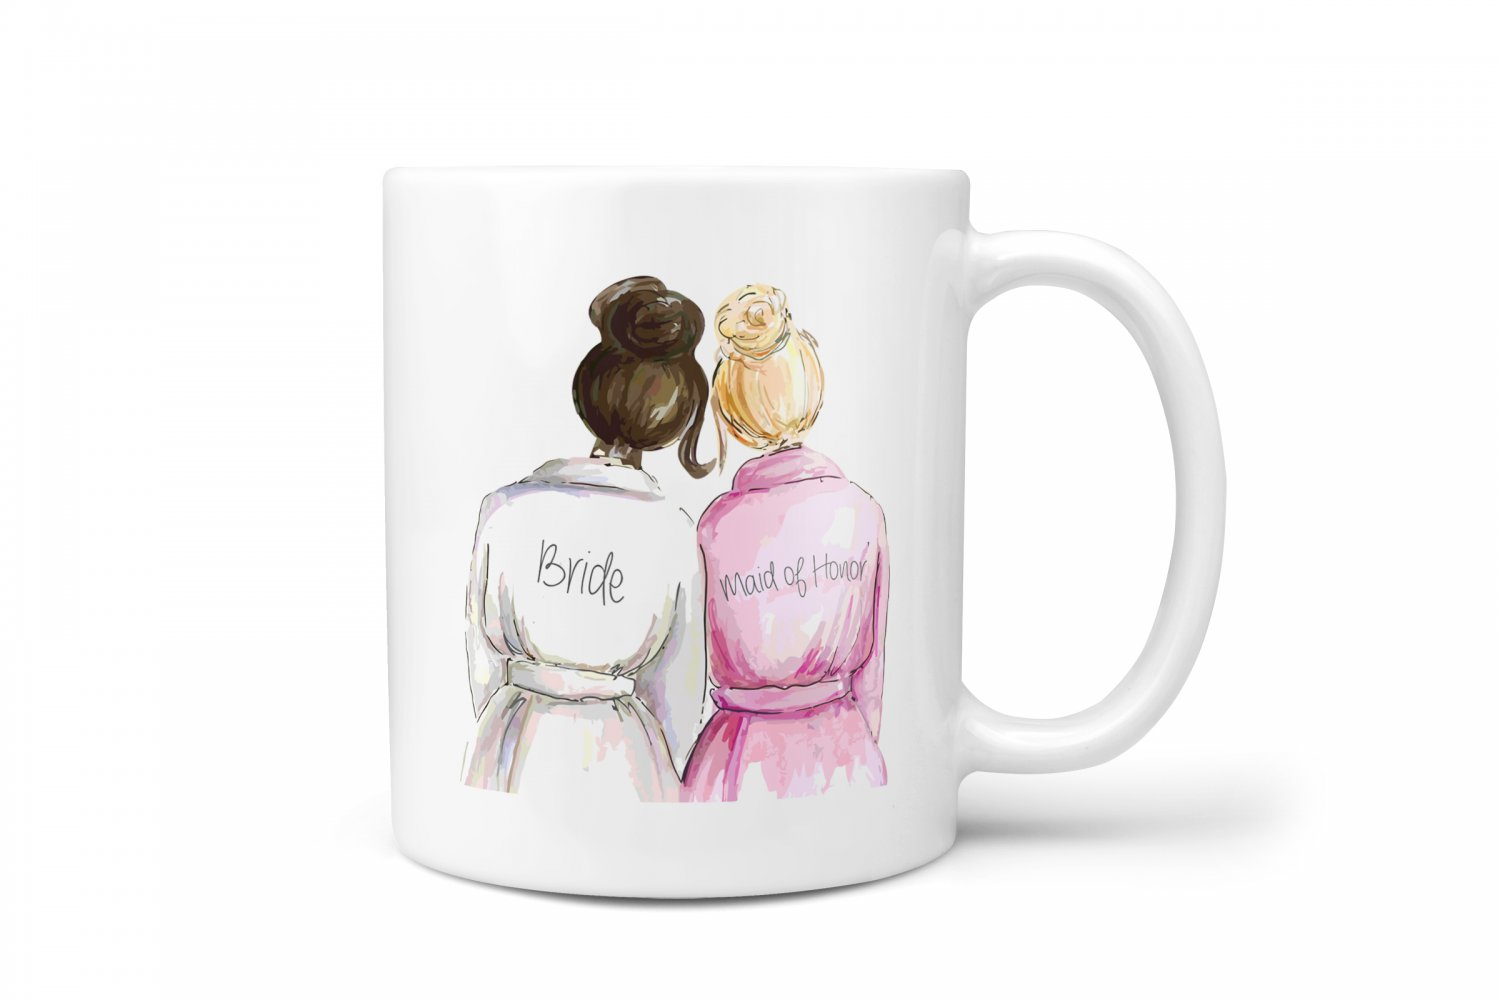 Maid Of Honor Gifts From Bride: Maid Of Honor Gifts/Wedding Gift For Bride/Bridal Shower